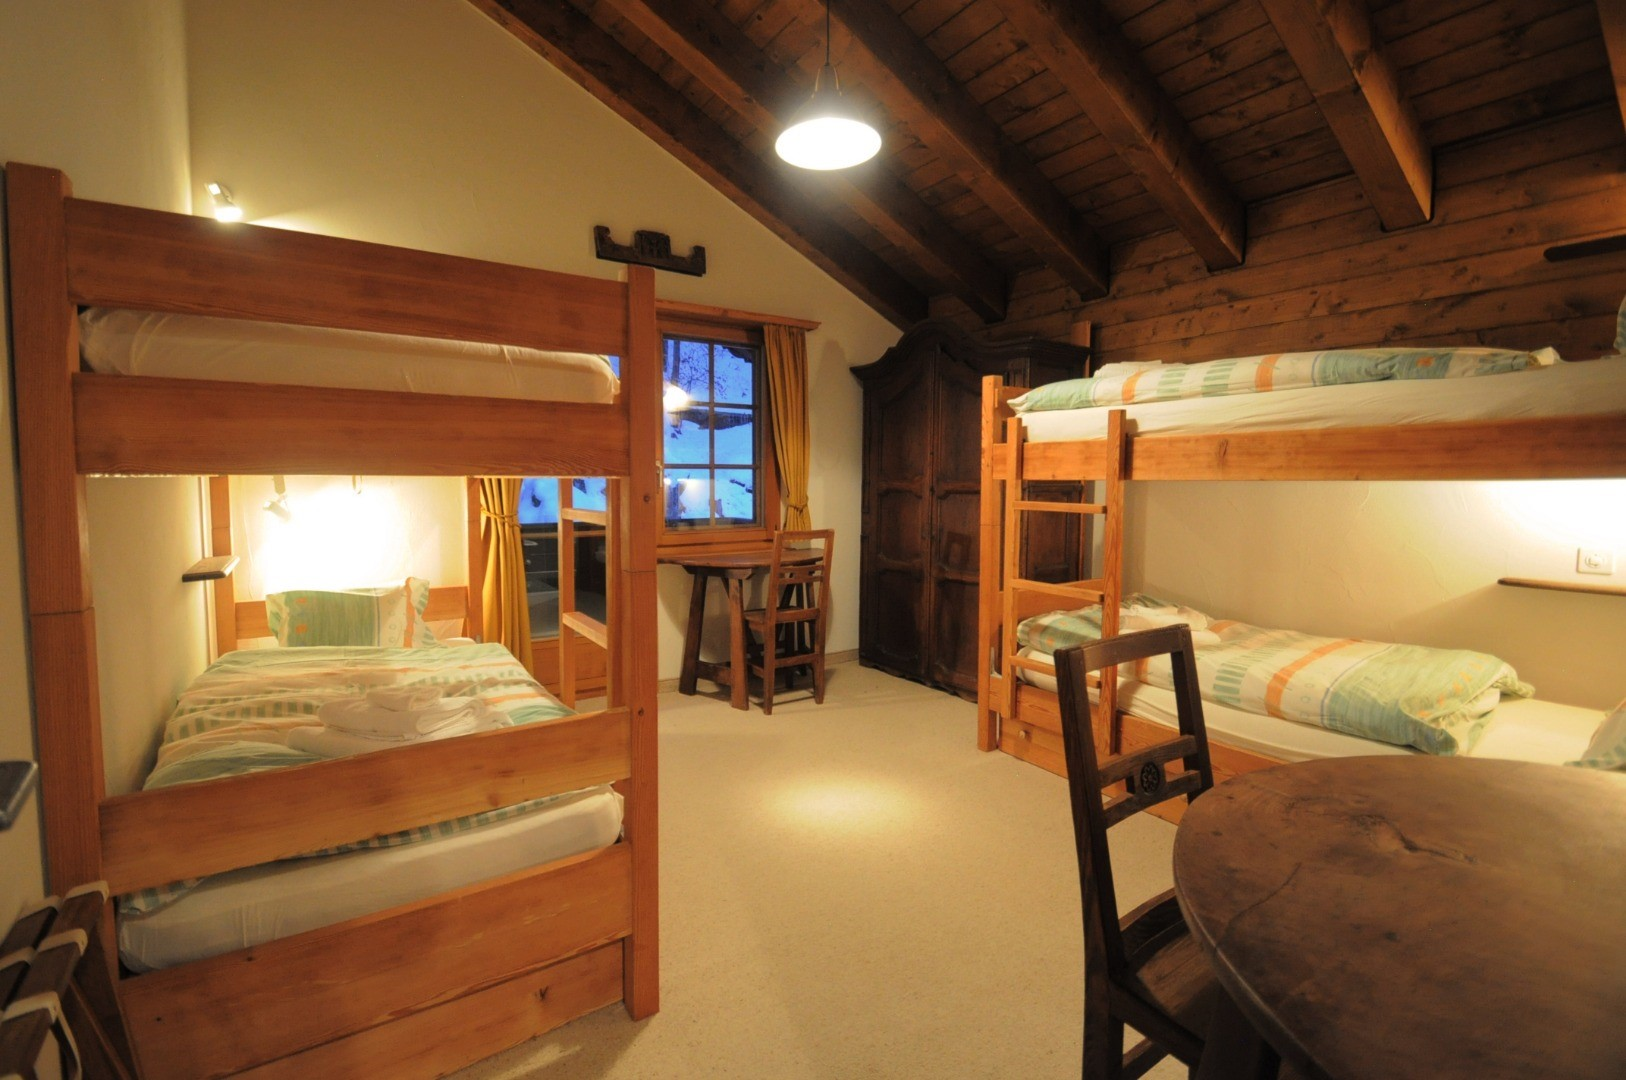 ZermattCervinoMiddleBedroom4.jpg